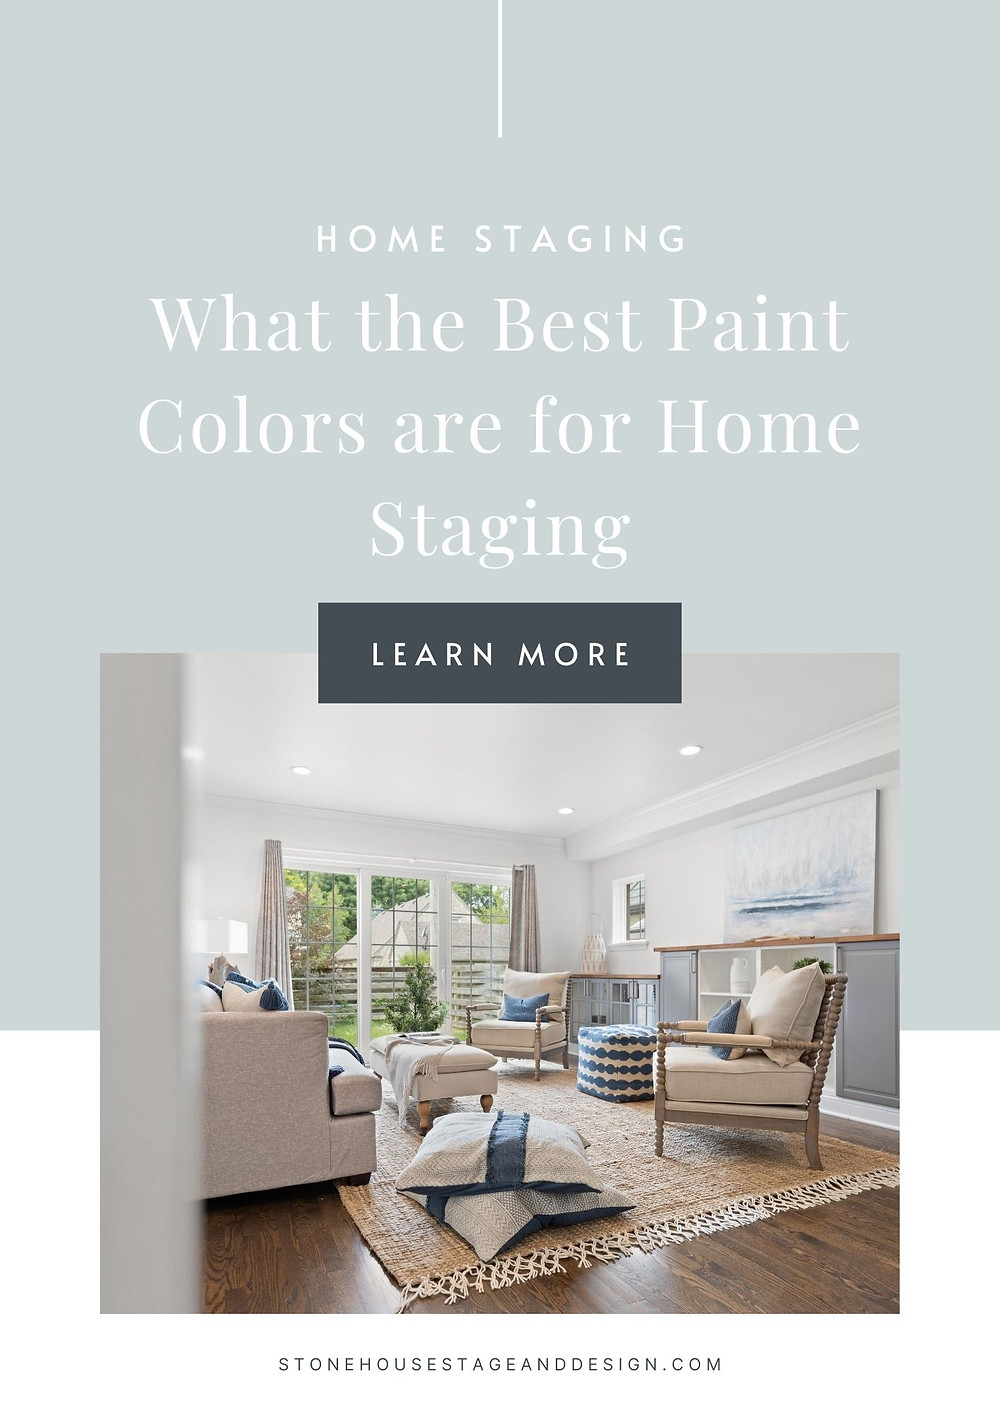 What the Best Paint Colors are for Home Staging